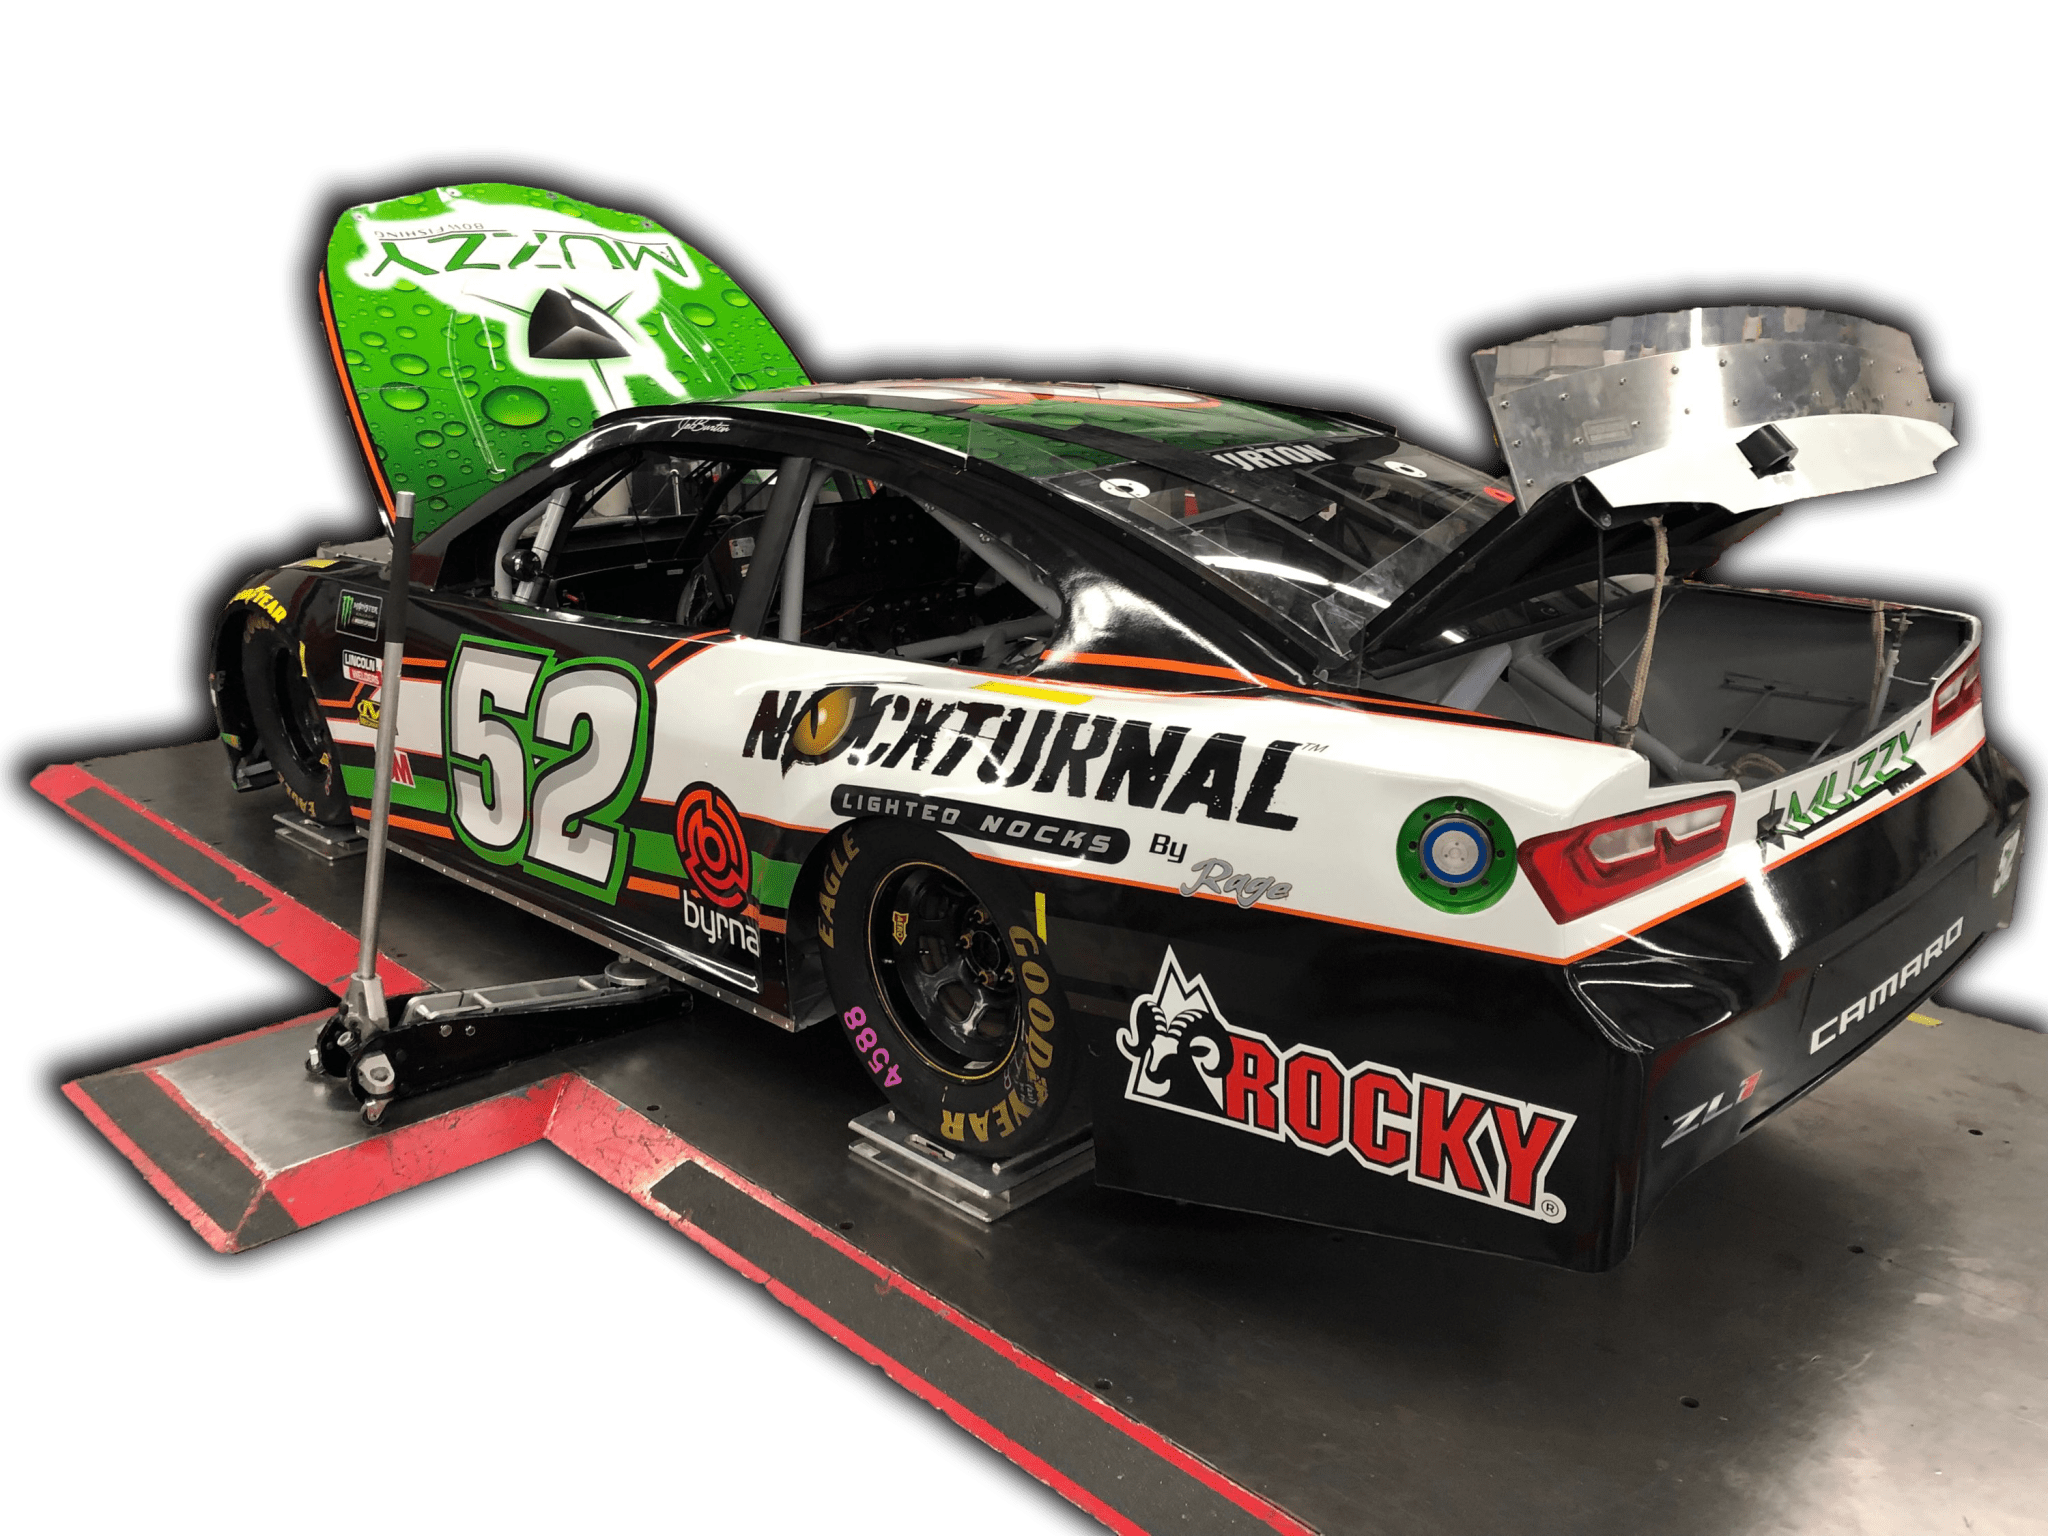 Race Car with Sponsorships